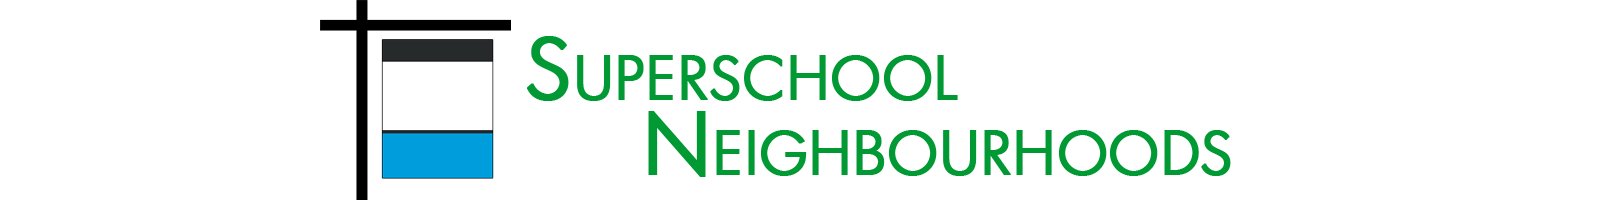 Superschool Neighbourhood